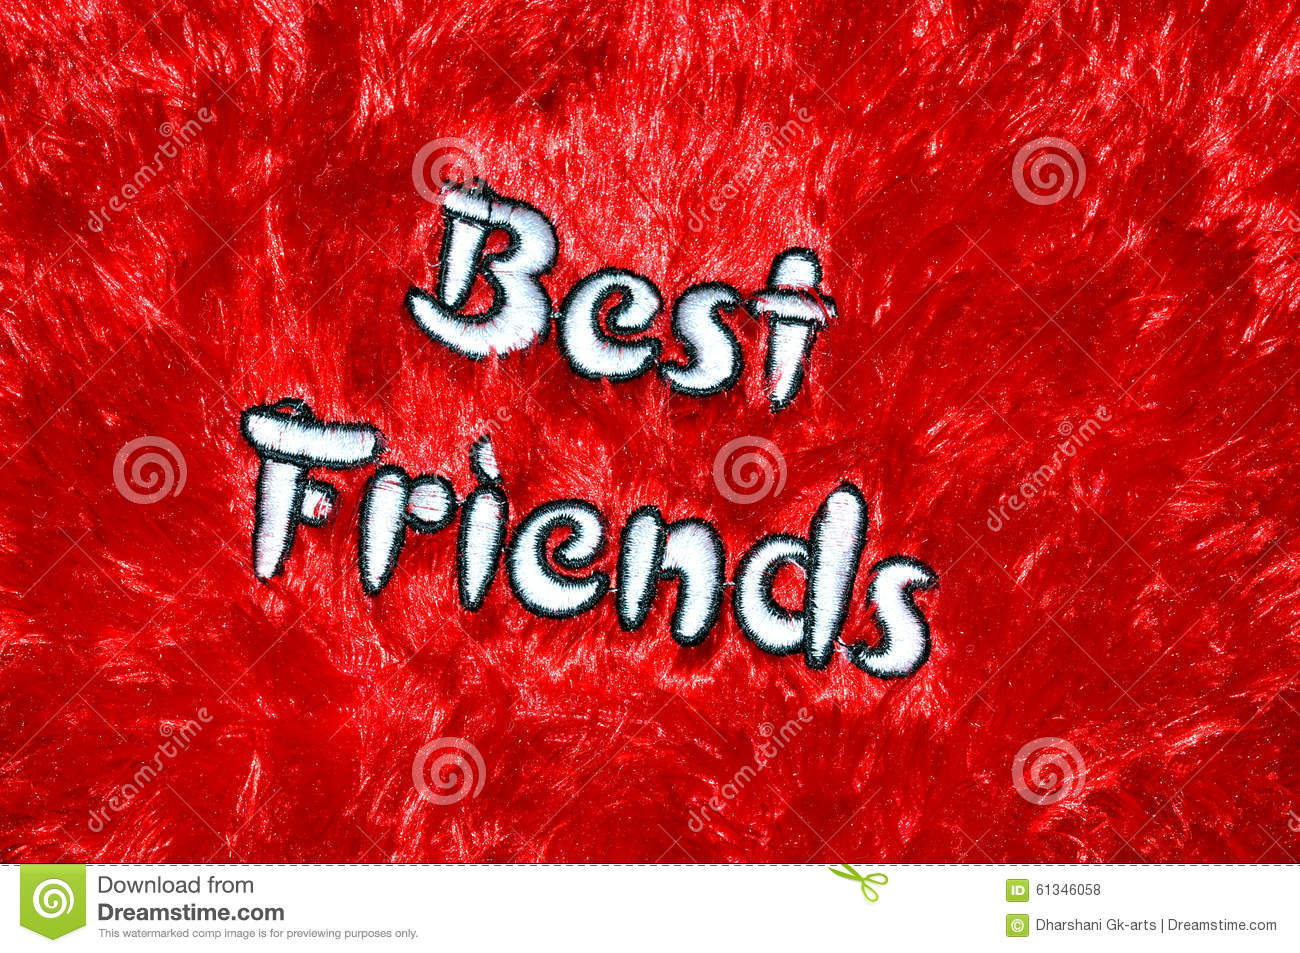 http://thumbs.dreamstime.com/z/best-friend-word-closeup-shot-velvet-cloth-printing-61346058.jpg Best Friends Photography With Words